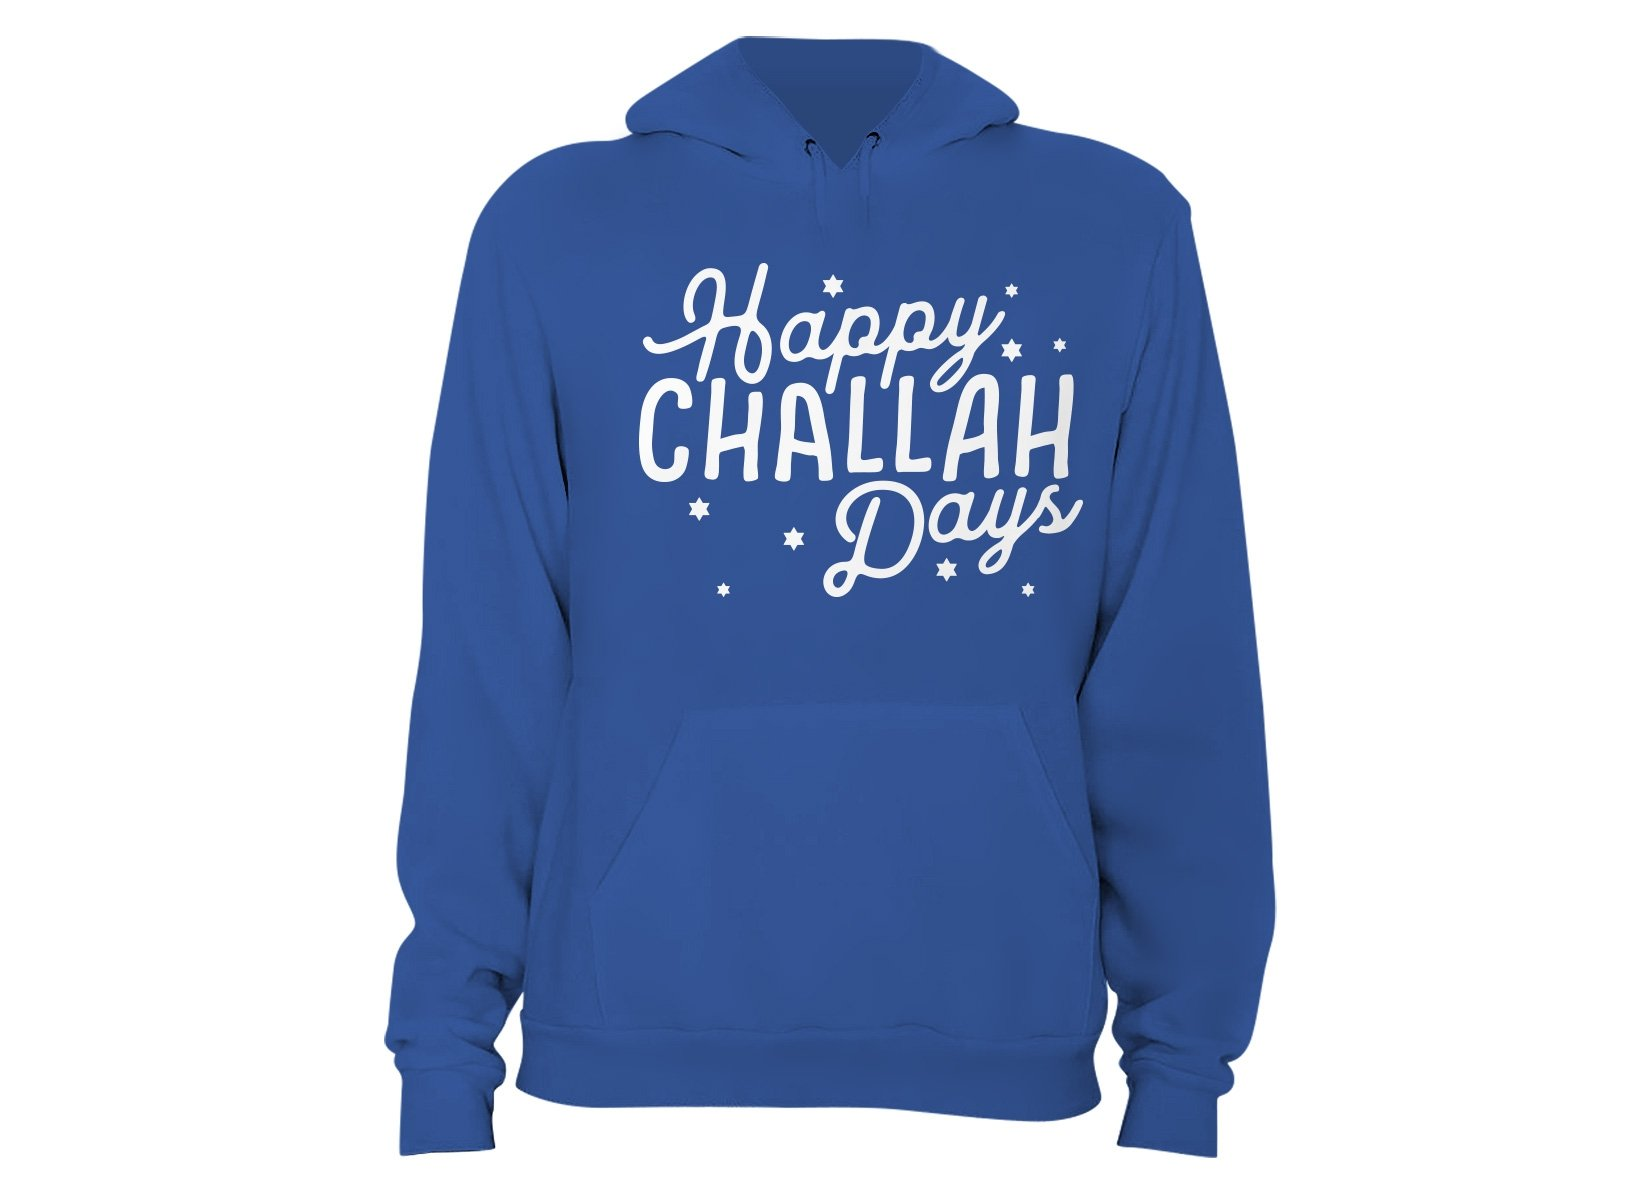 Happy Challah Days on Hoodie